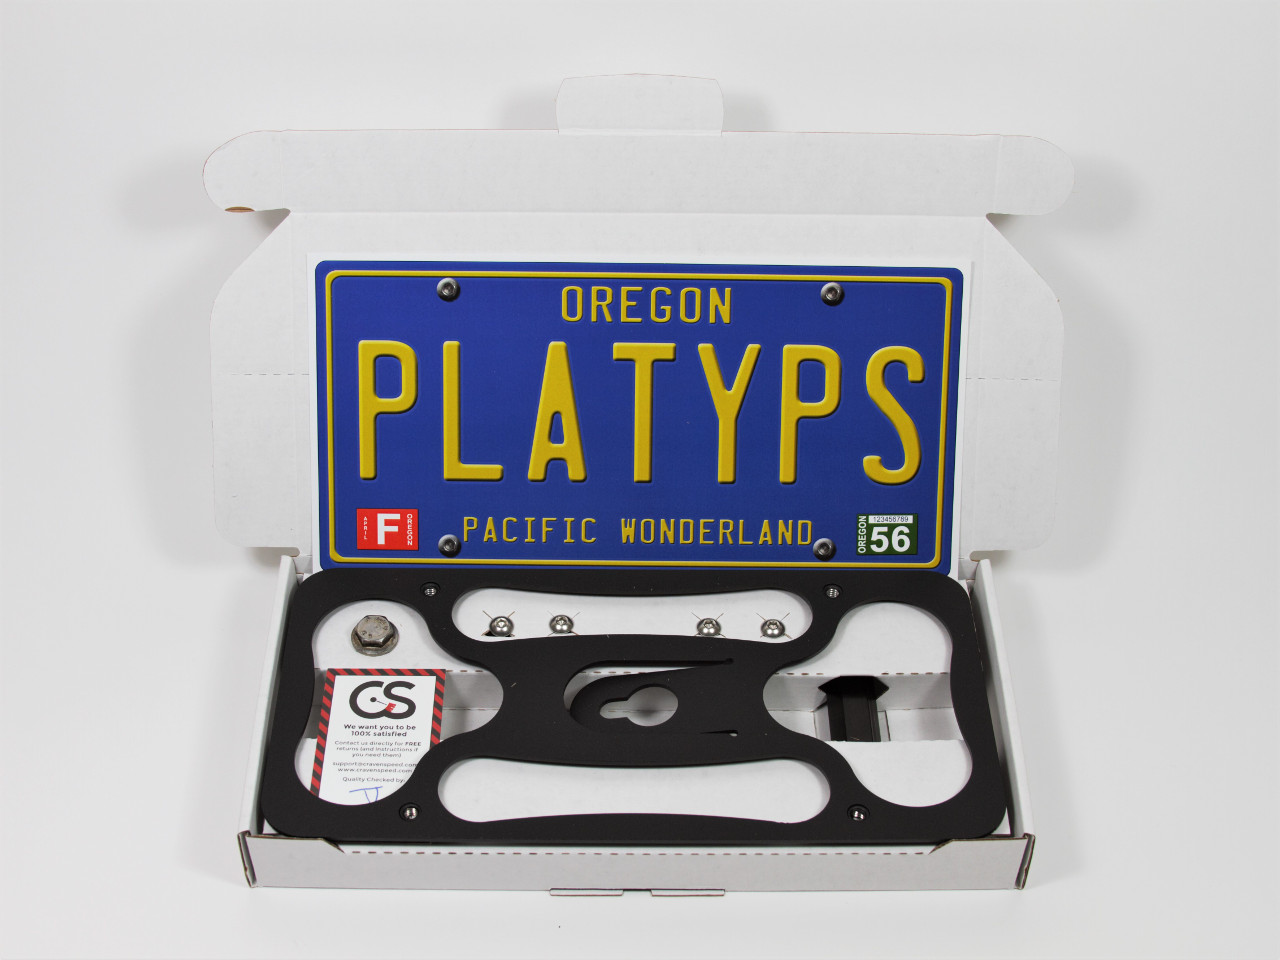 Assembled kit of The Platypus License Plate Mount for 2007-2011 BMW 328i Sedan